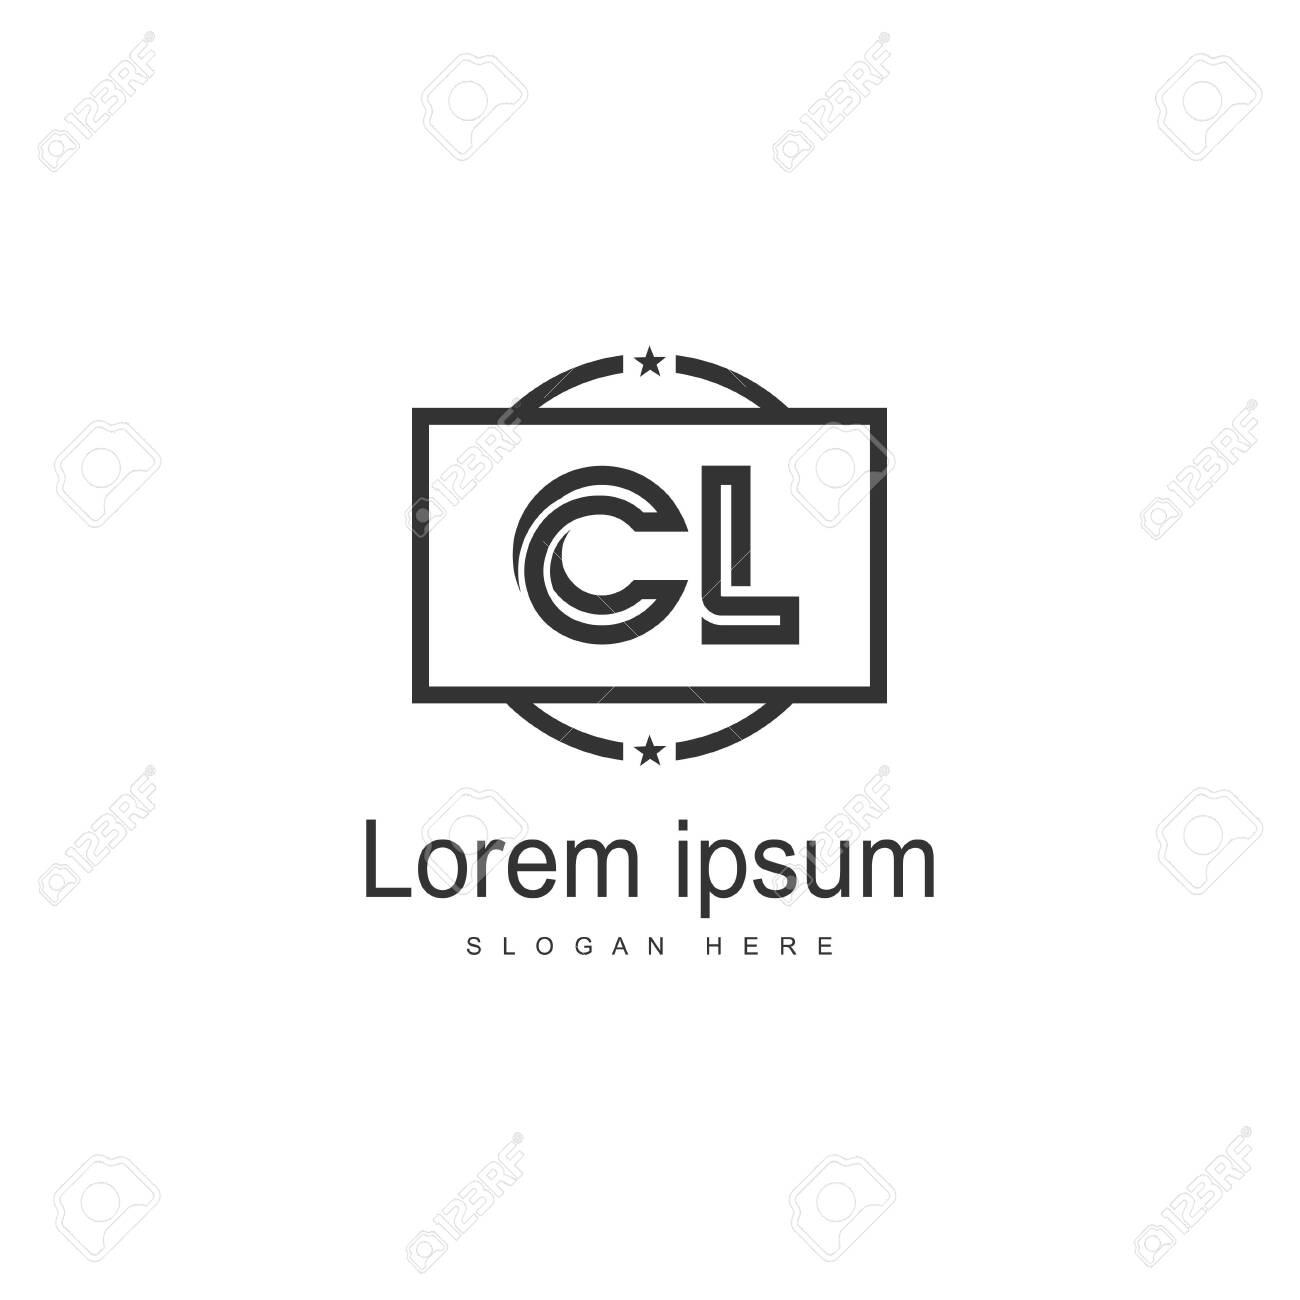 Initial CL logo template with modern frame. Minimalist CL letter logo vector illustration - 129276601